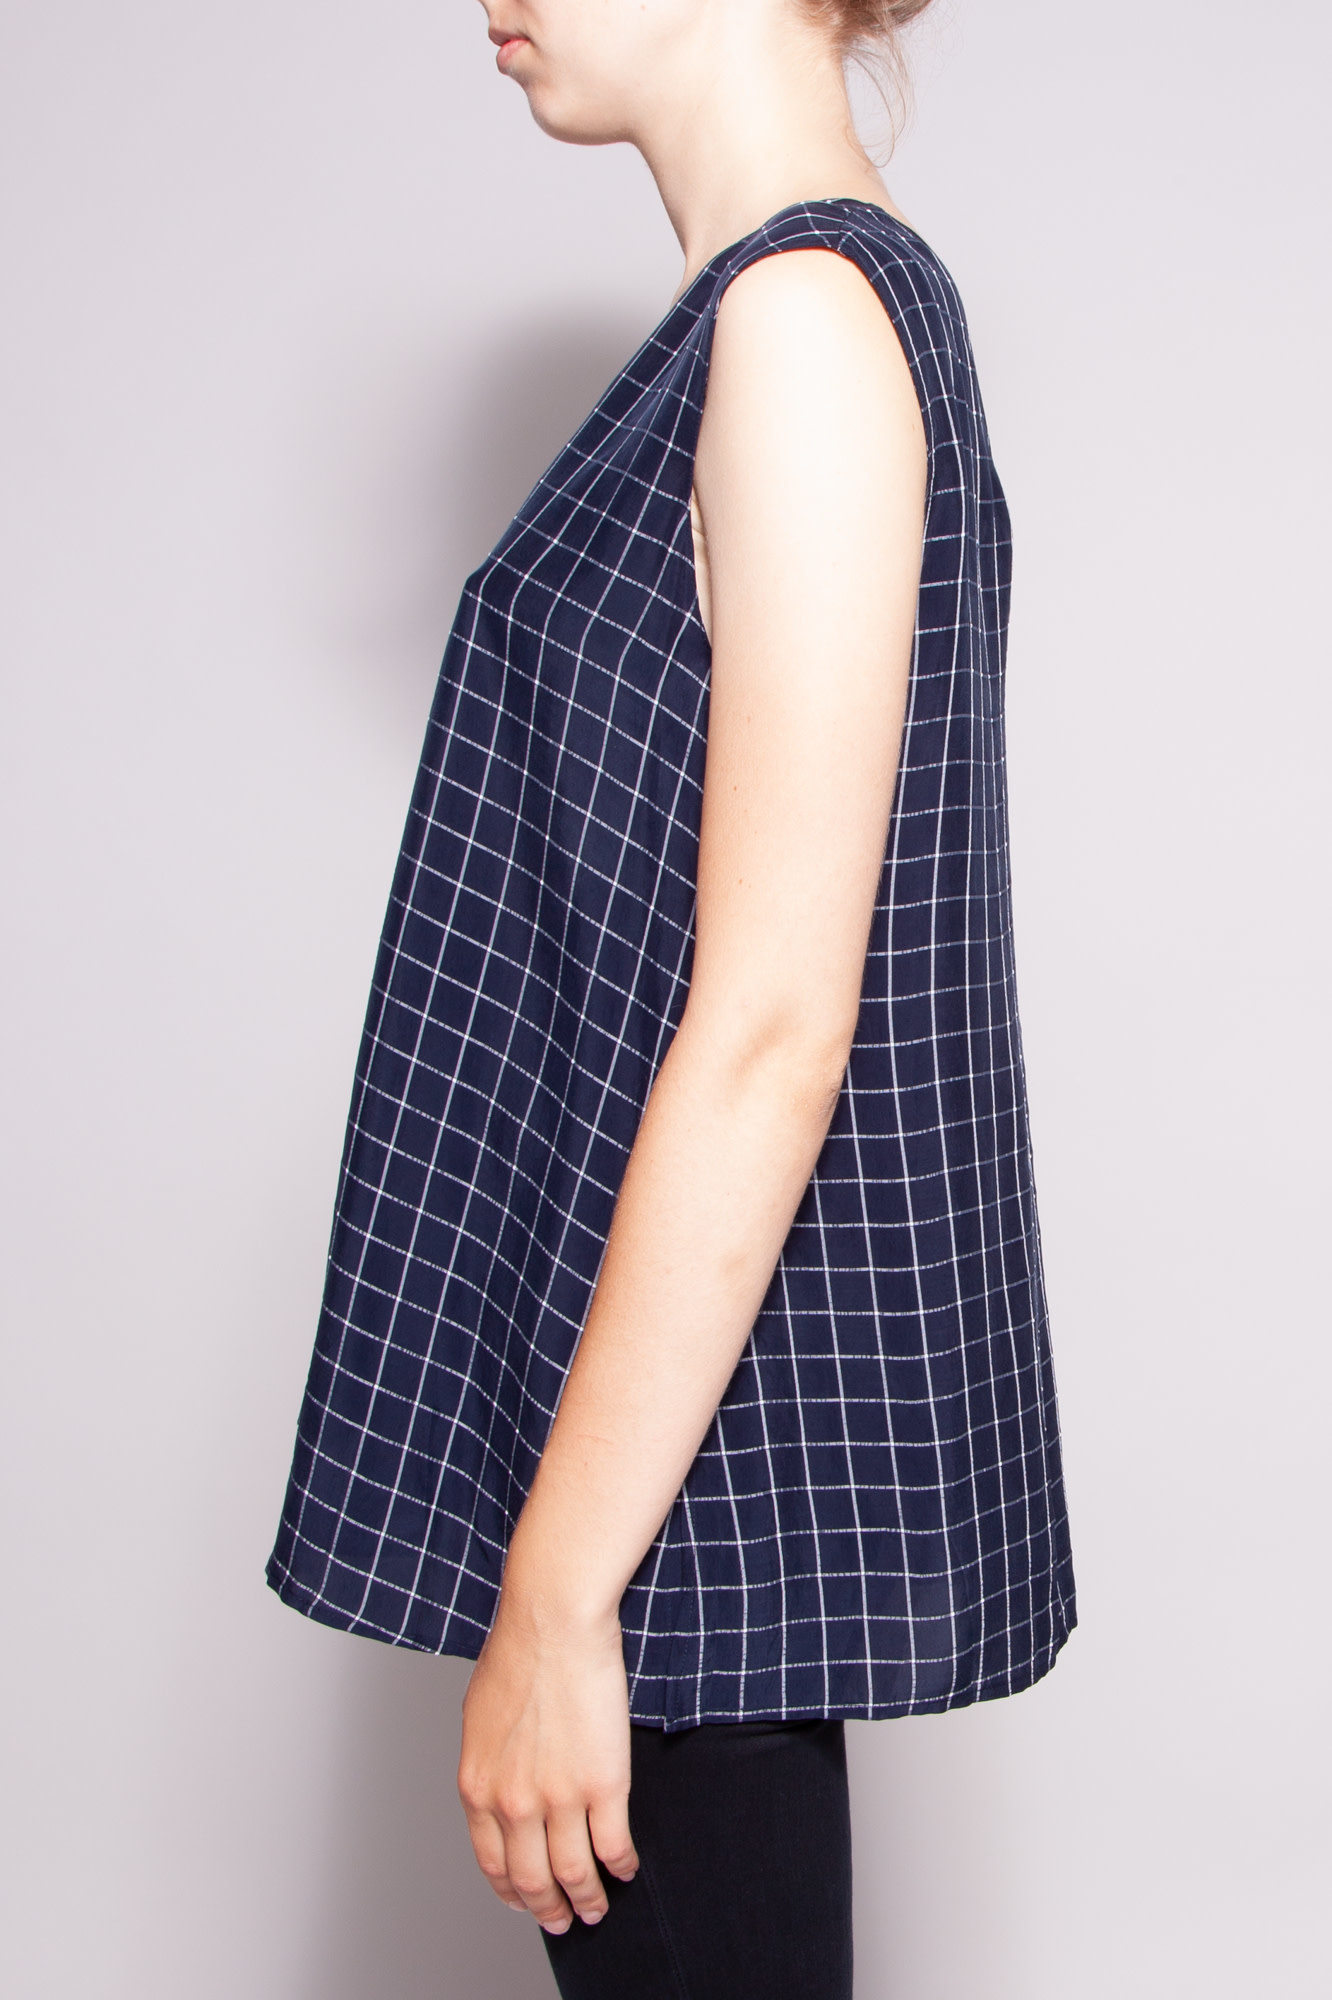 Theory NEW PRICE (WAS $110) - BLUE CHECK SLEEVELESS TOP - NEW